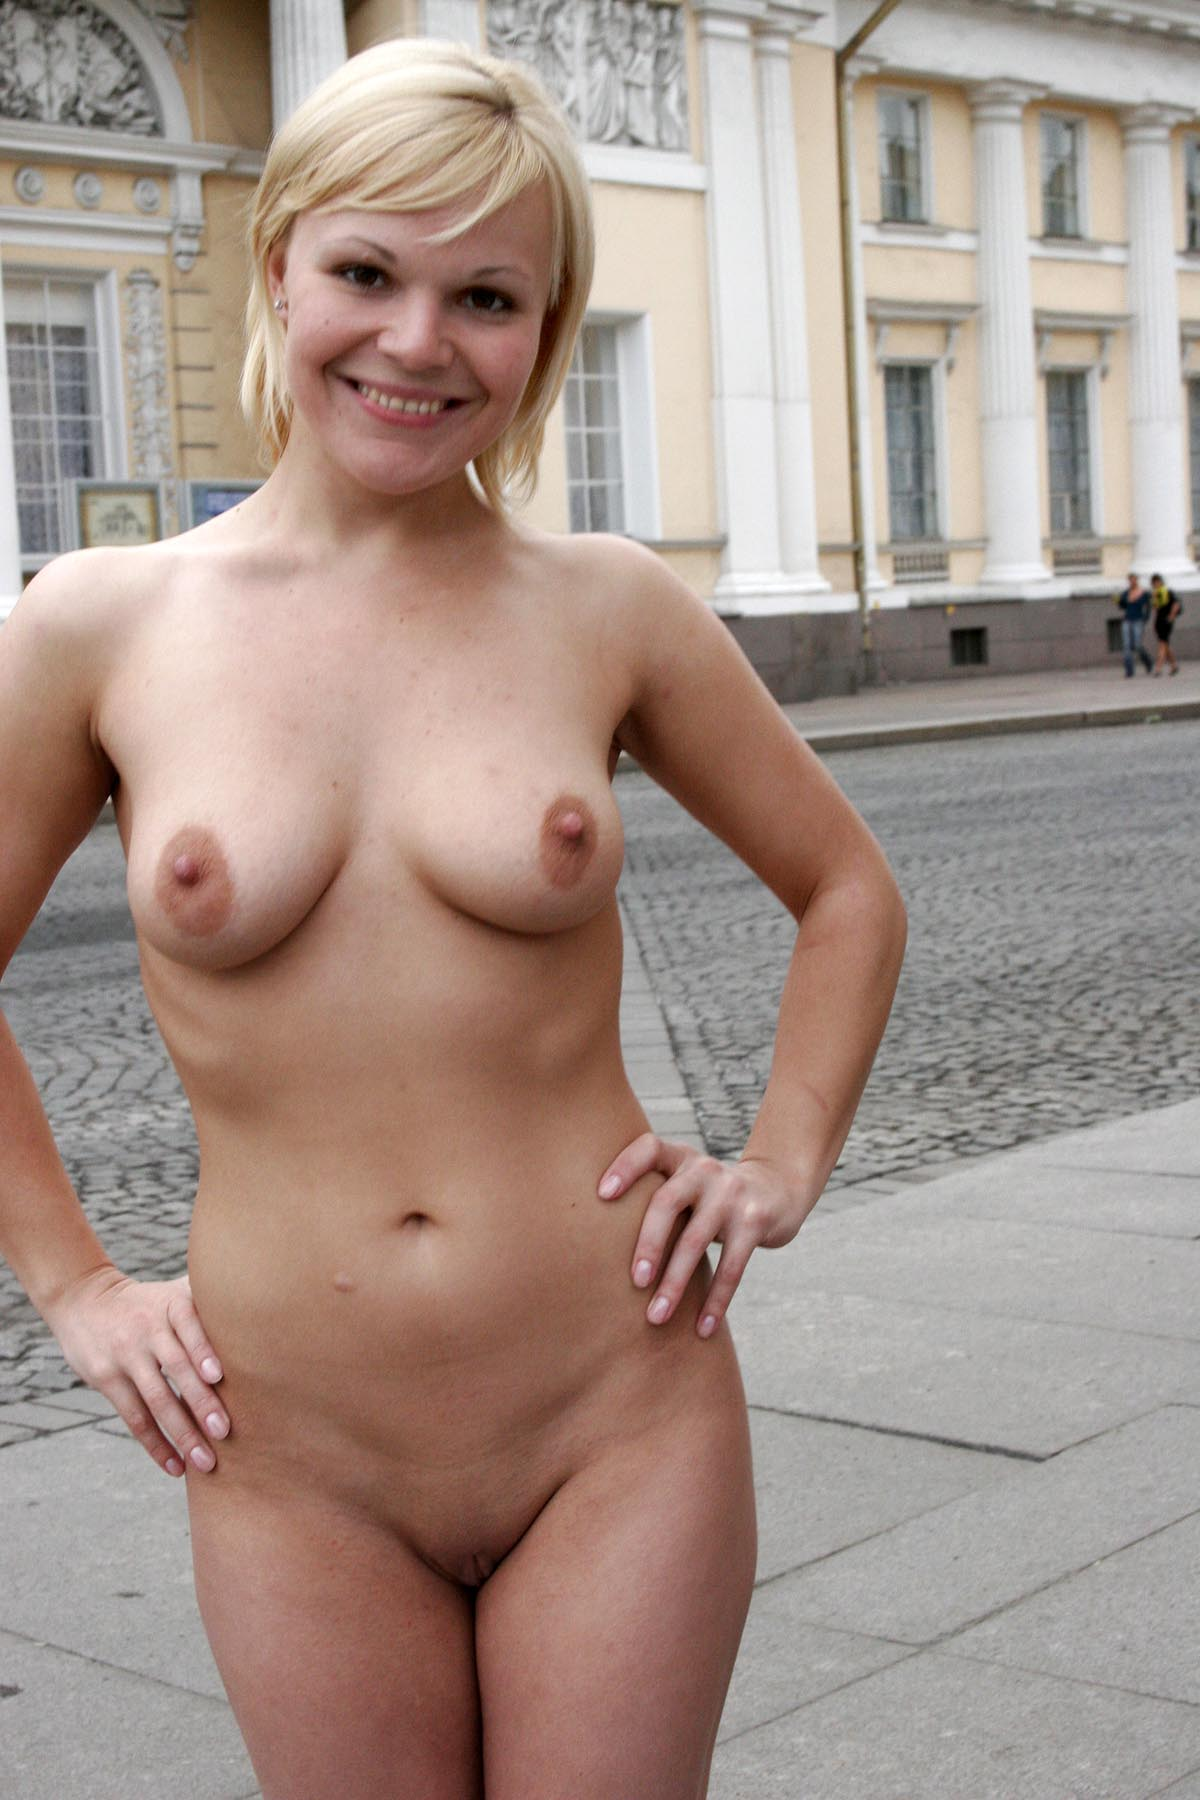 all nude short hair